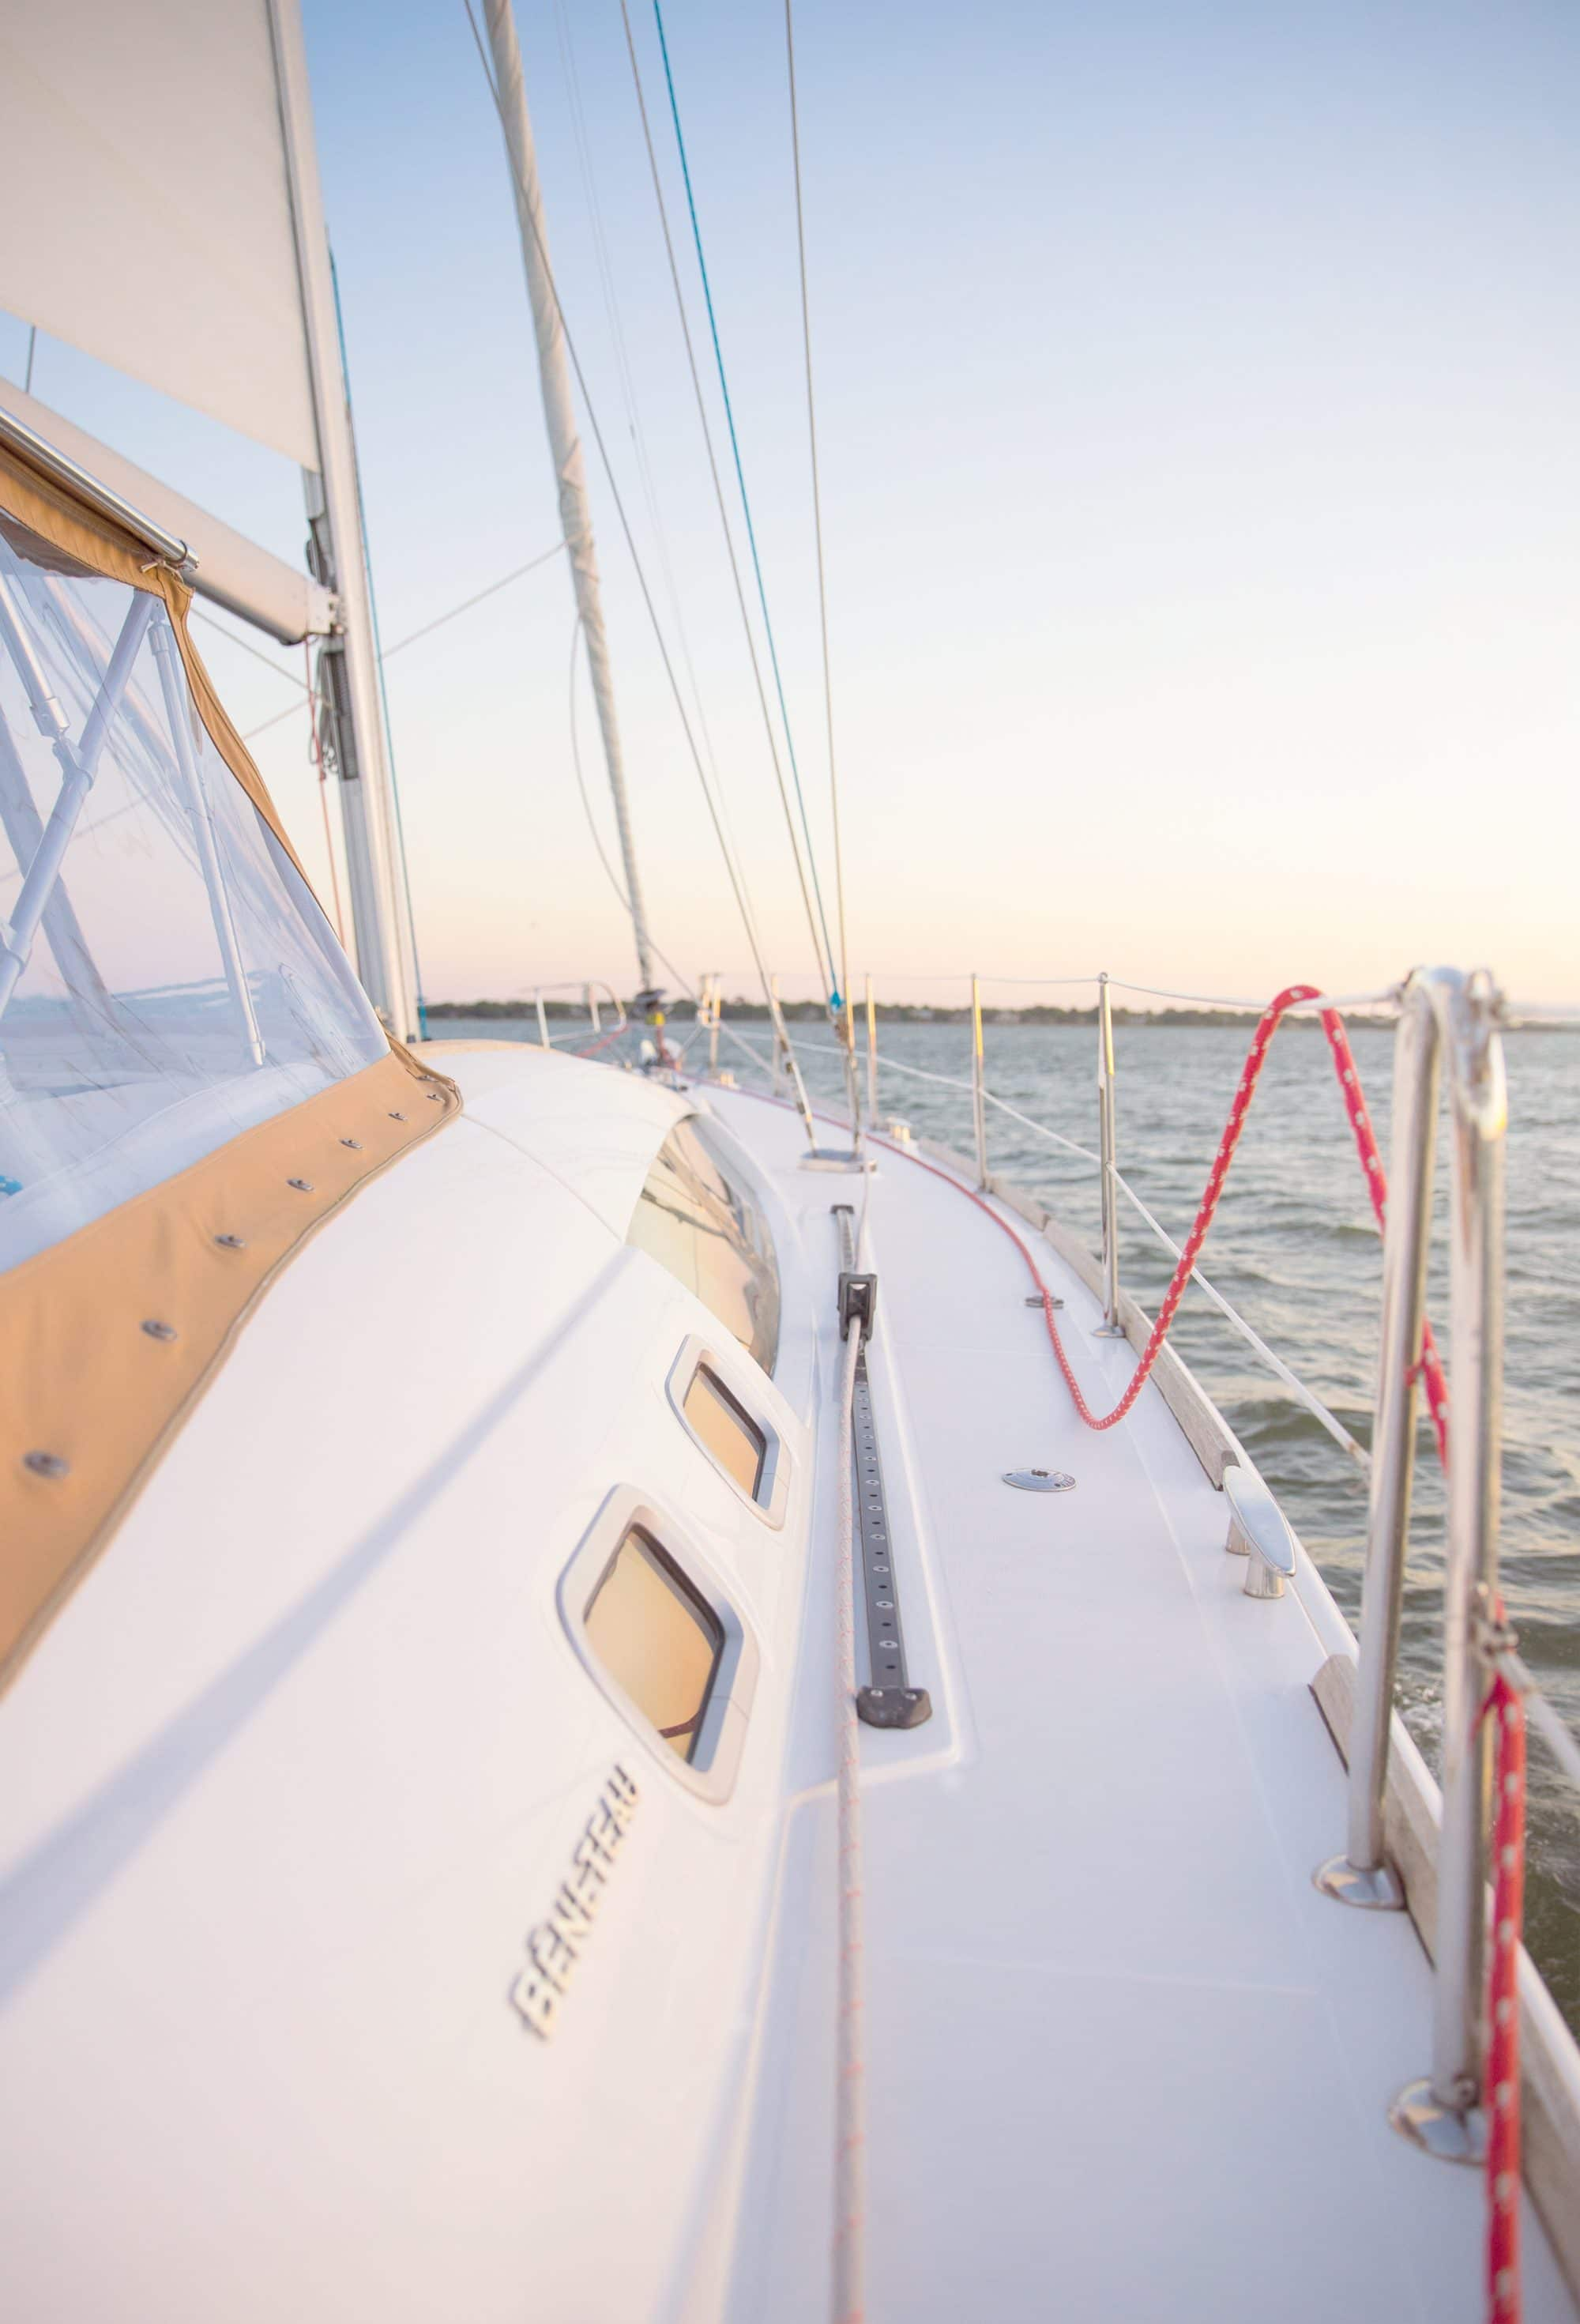 Sail Boat - Charleston, SC - Ashley Brooke Designs